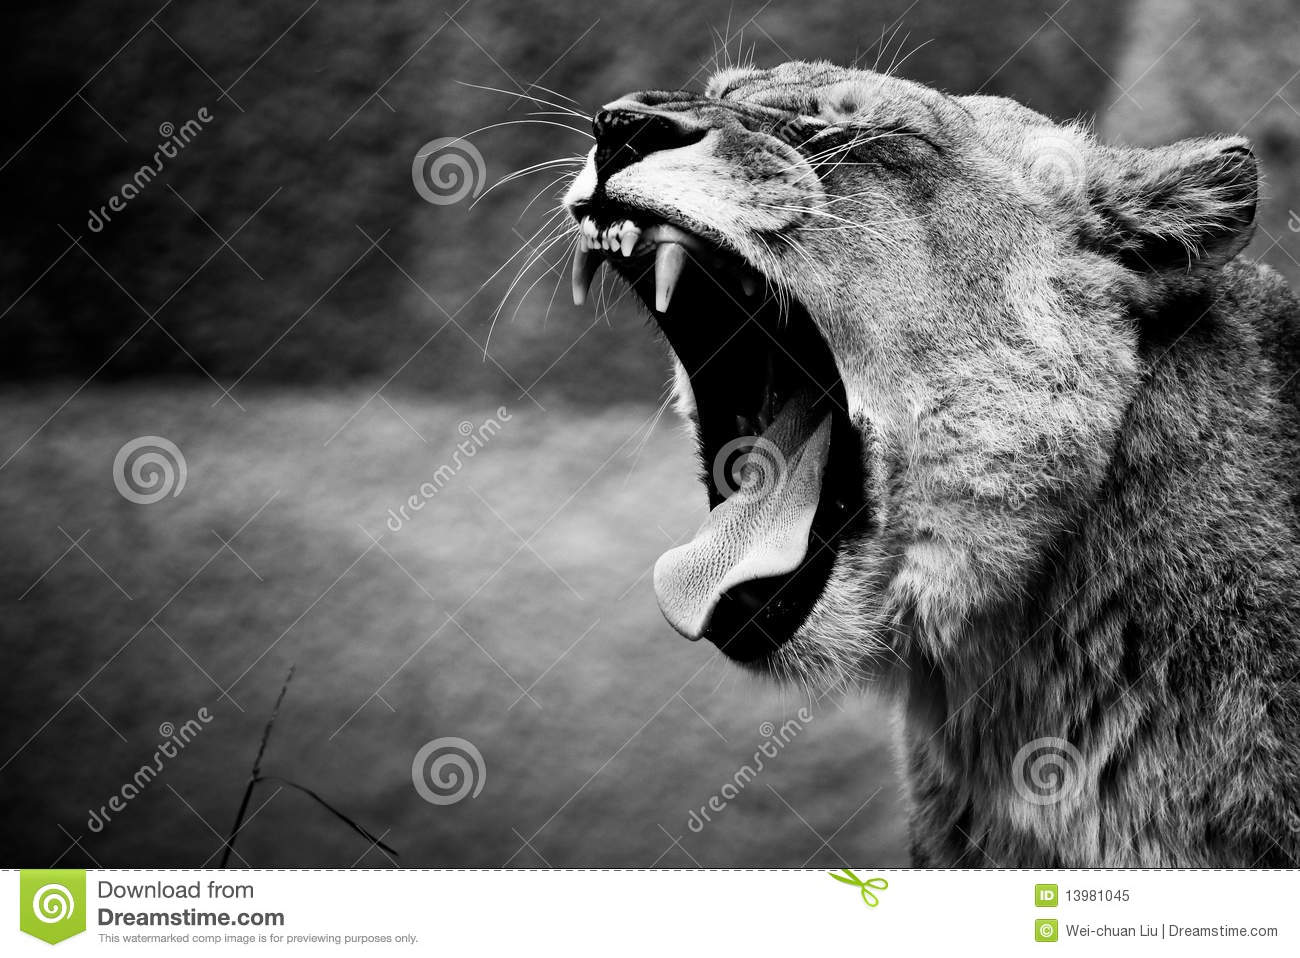 3d Black Jaguar Wallpaper Lion Roar Royalty Free Stock Photo Image 13981045